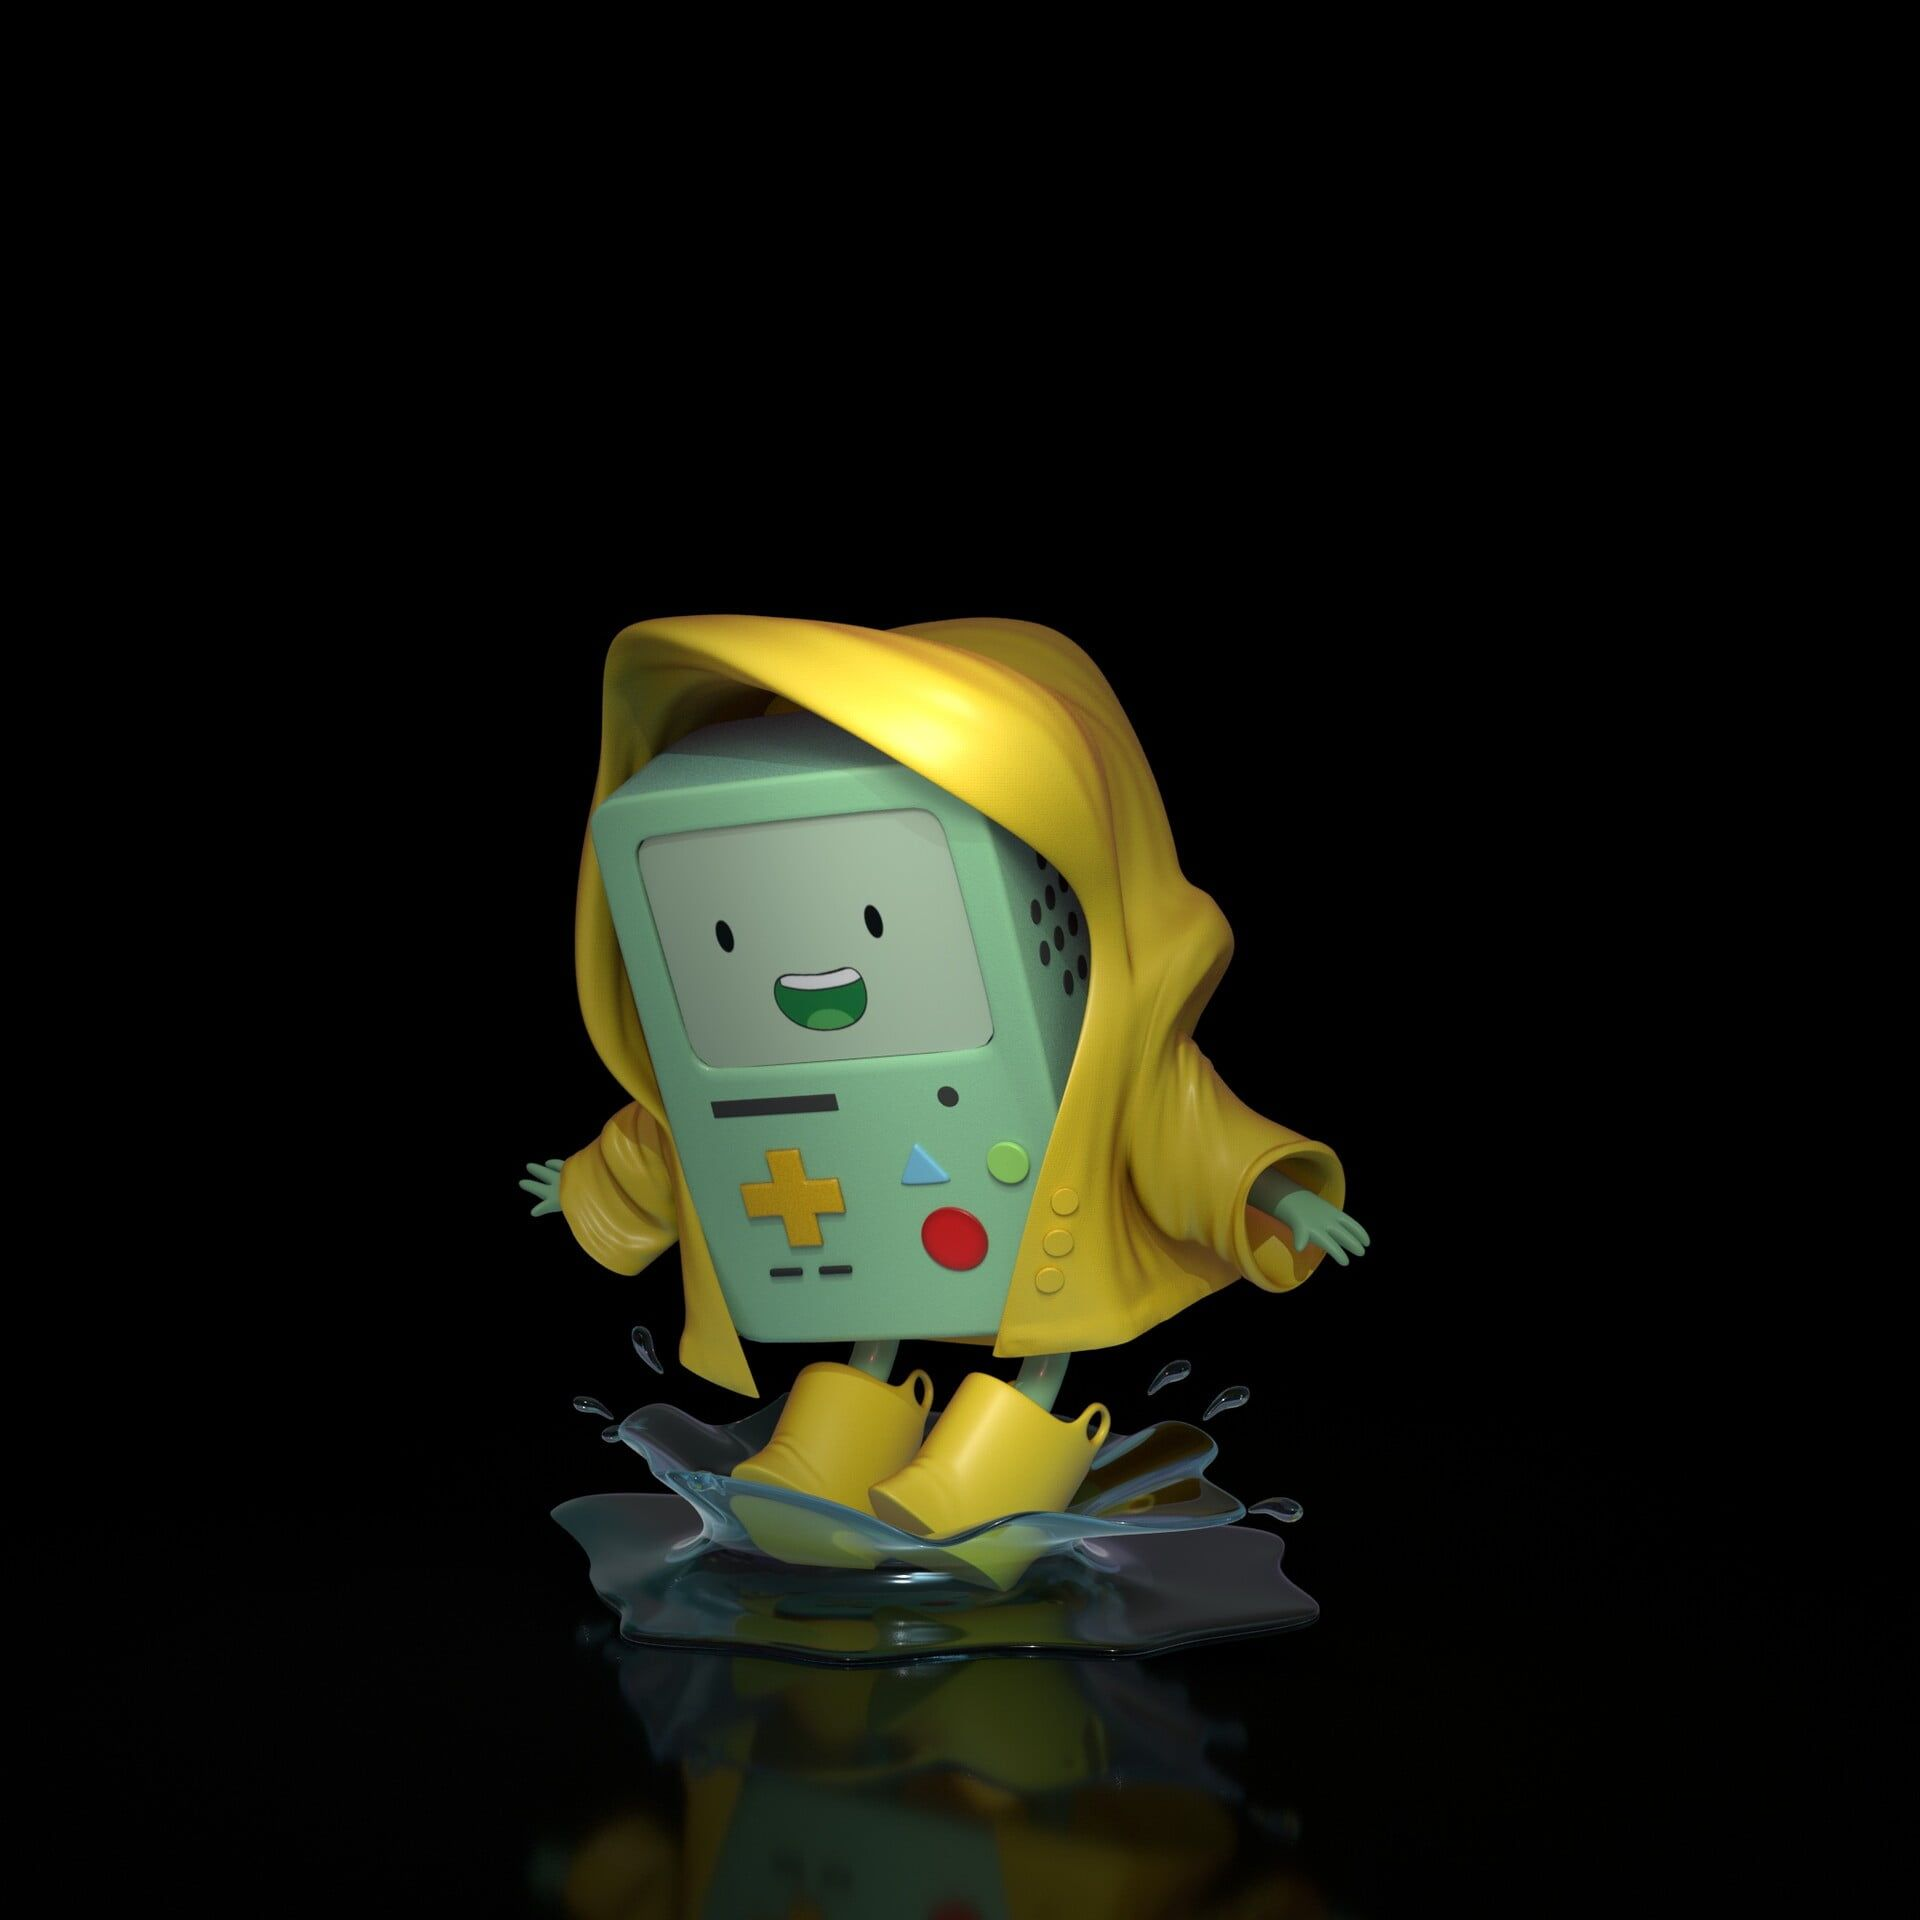 Adventure Time Simple Background Puddle Console Bmo Smiling Fan Art Digital Art 1080p Wallpape In 2020 Adventure Time Wallpaper Simple Backgrounds Adventure Time